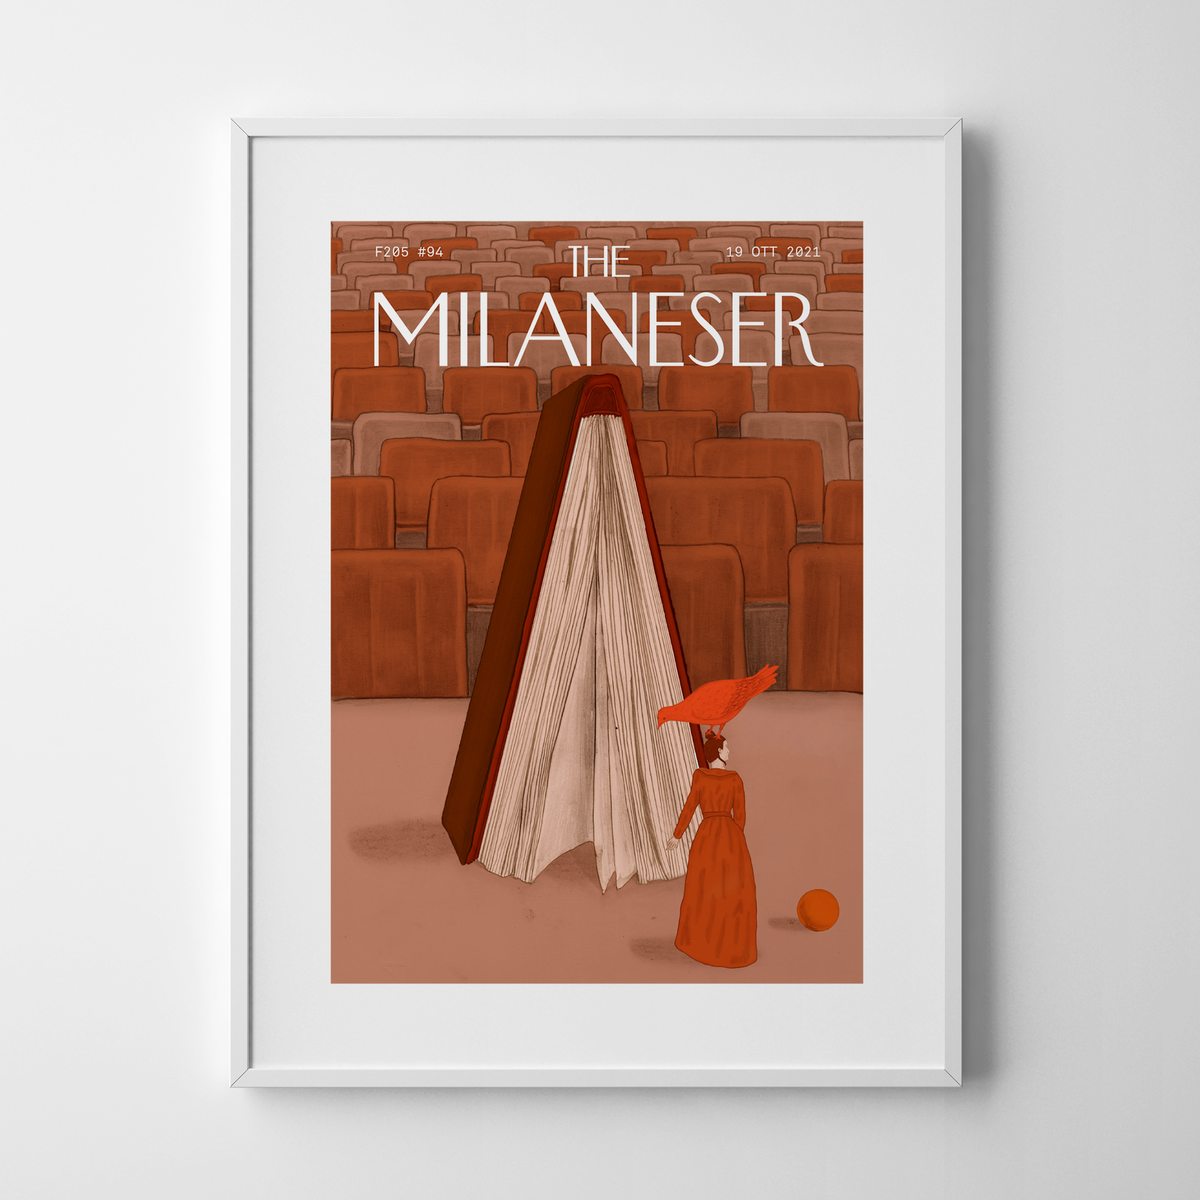 Image of The Milaneser #94